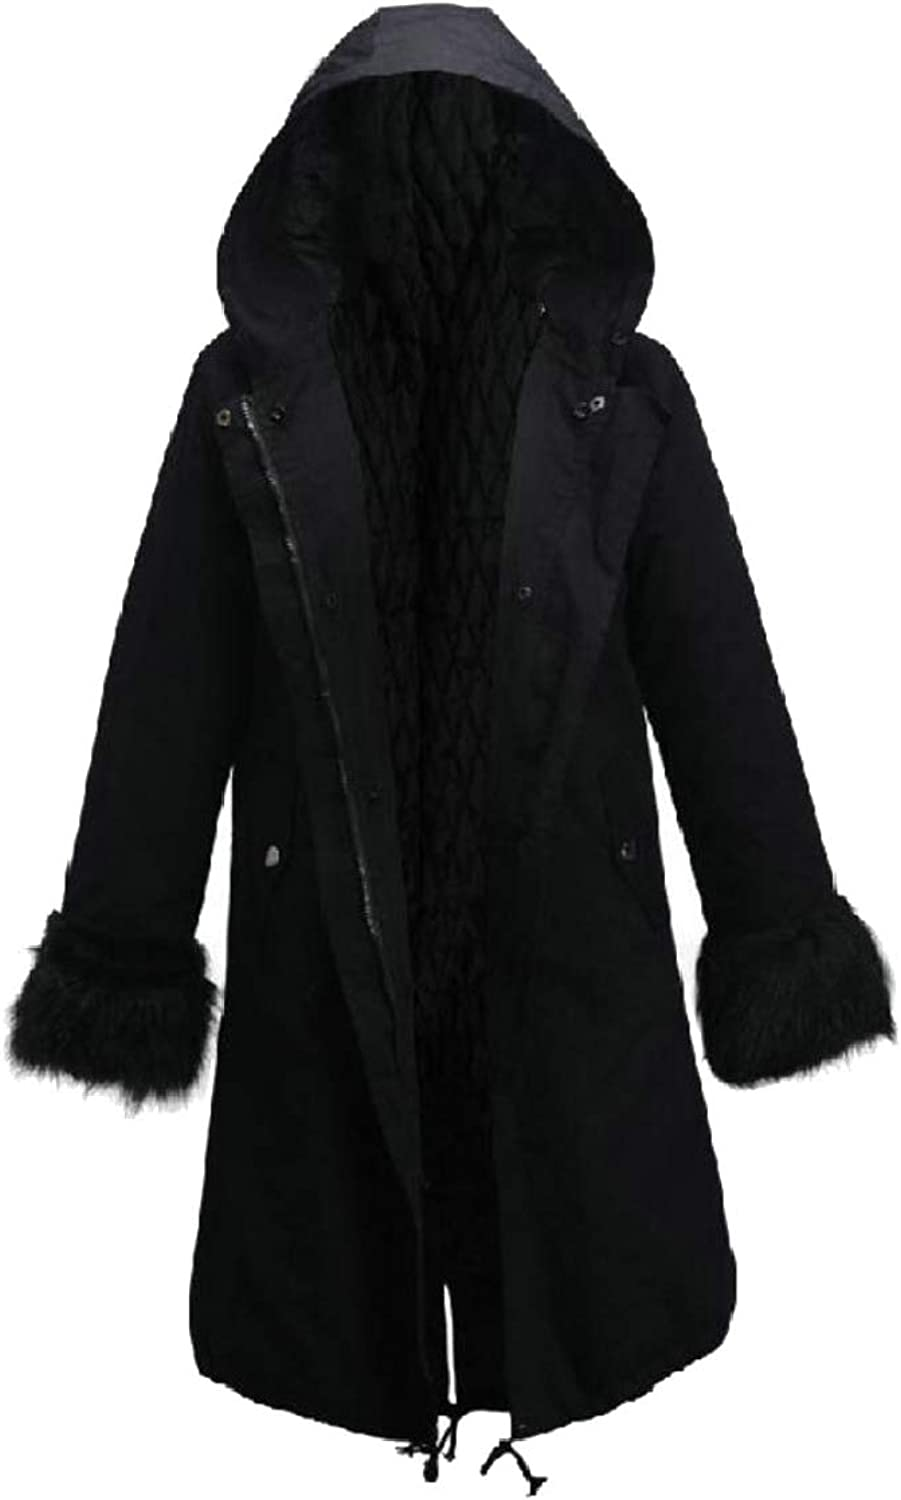 Jxfd Women's Winter Coat Hood Parka Overcoat Faux Fur Parka Jacket Outwear